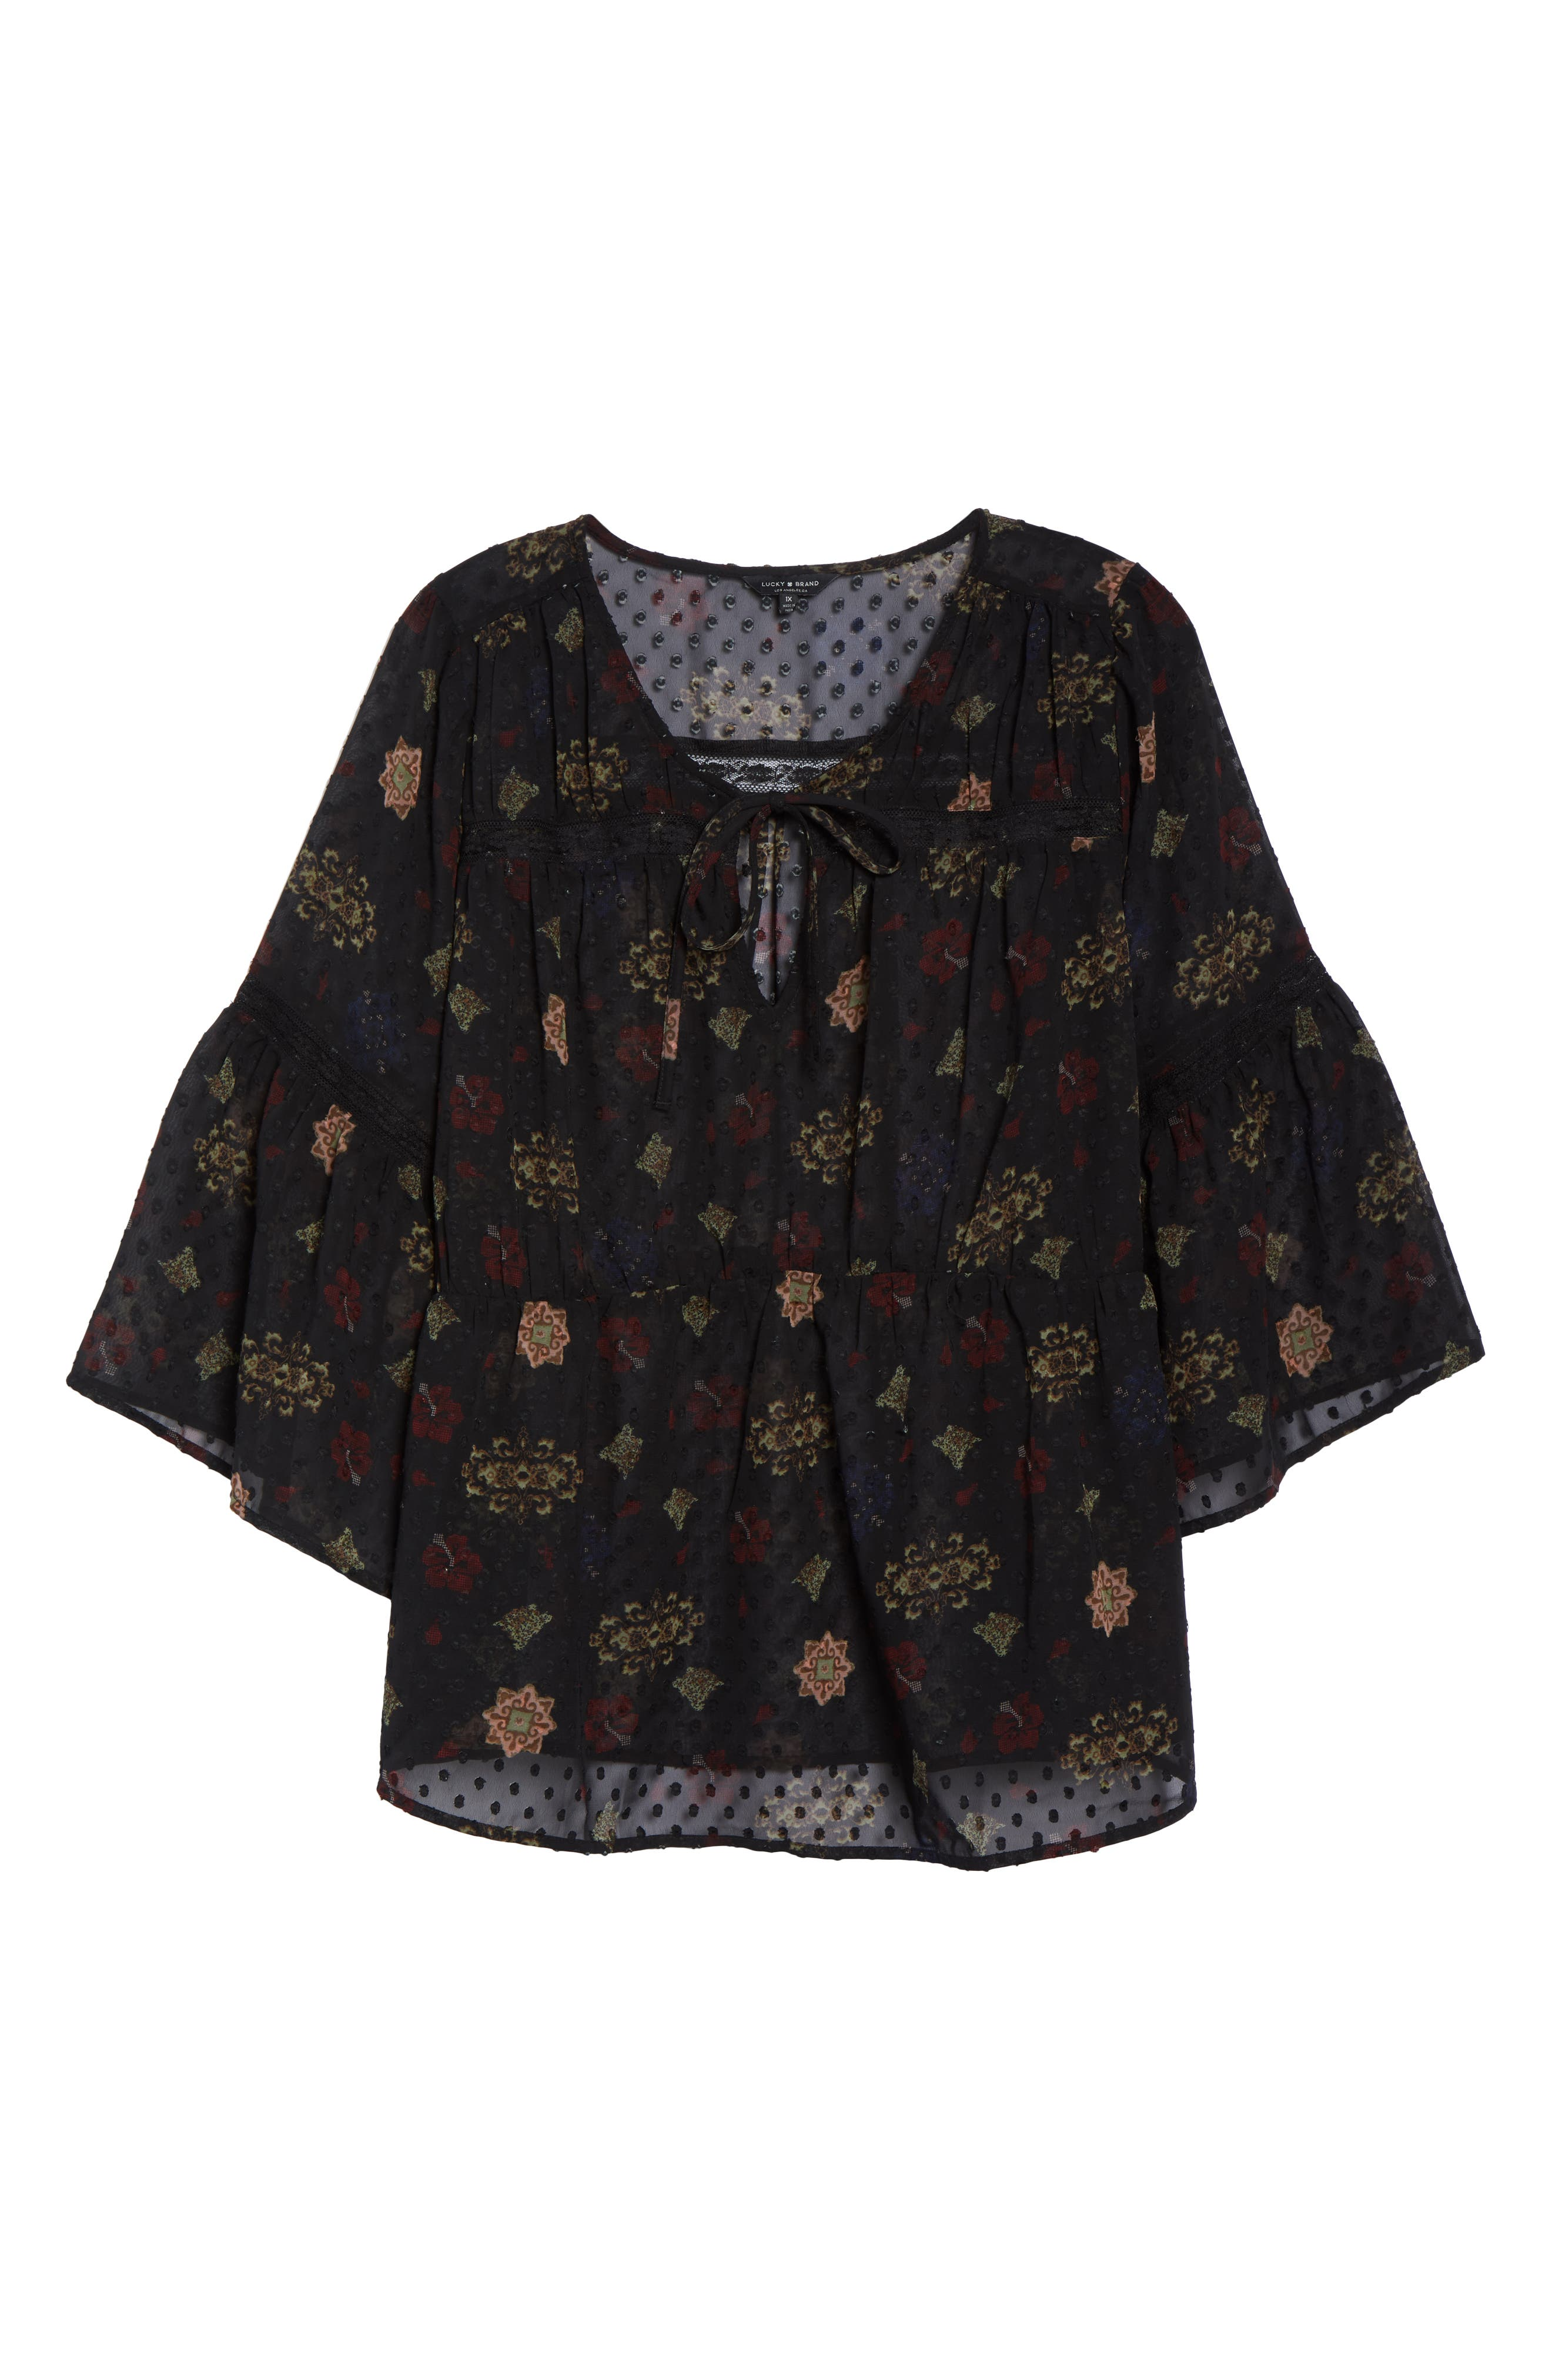 Swiss Dot Floral Top,                             Alternate thumbnail 6, color,                             BLACK MULTI